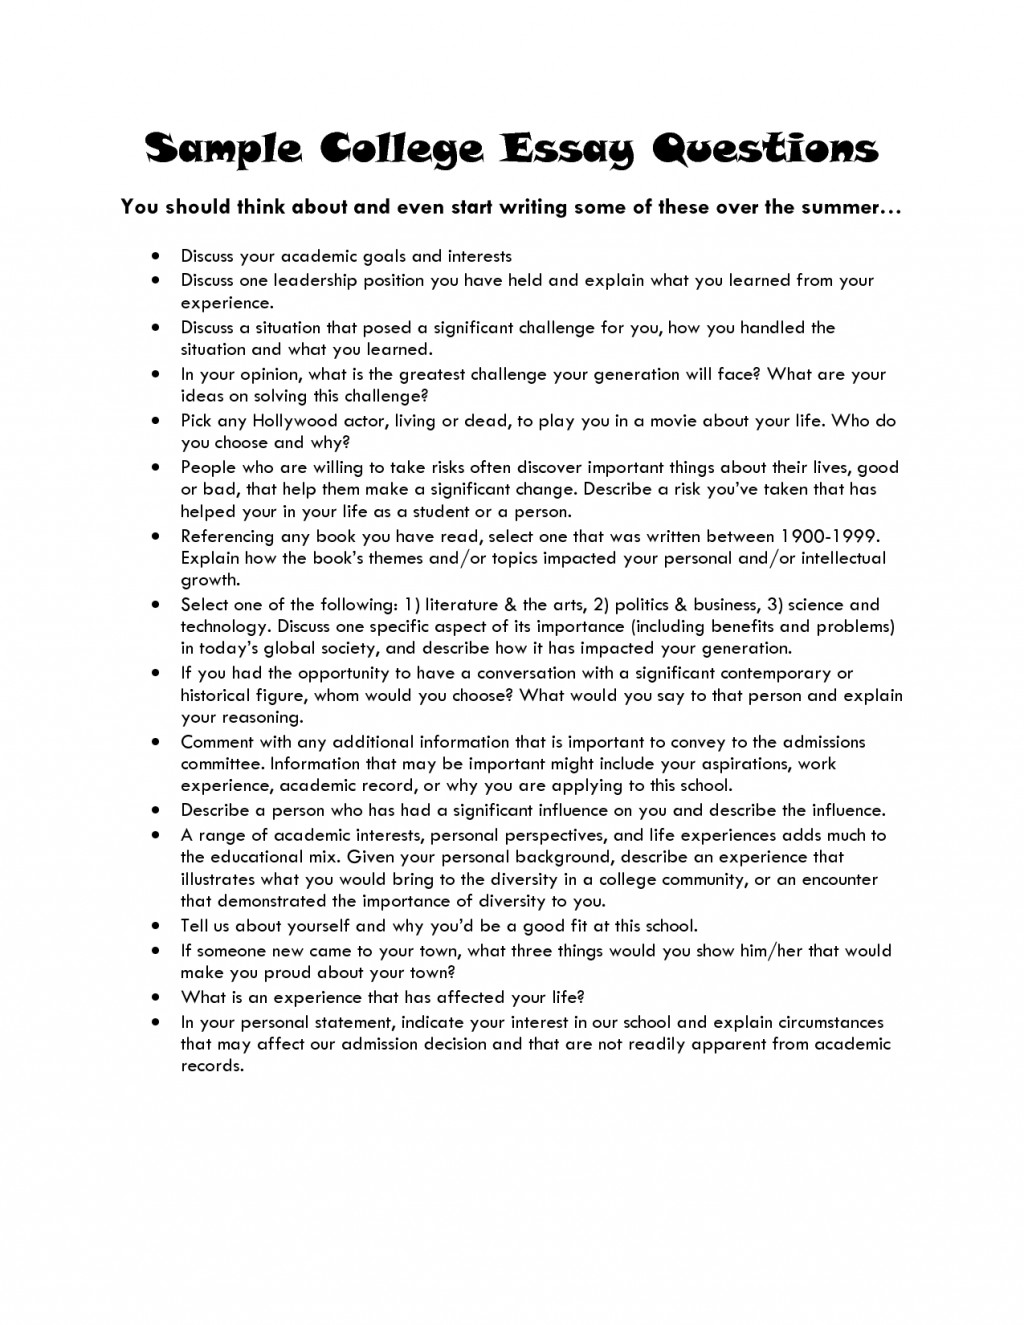 005 College Essay Topics Academic Goals Sample Questions L Top A B And C Examples Prompt 1 Research Paper 2018 Large